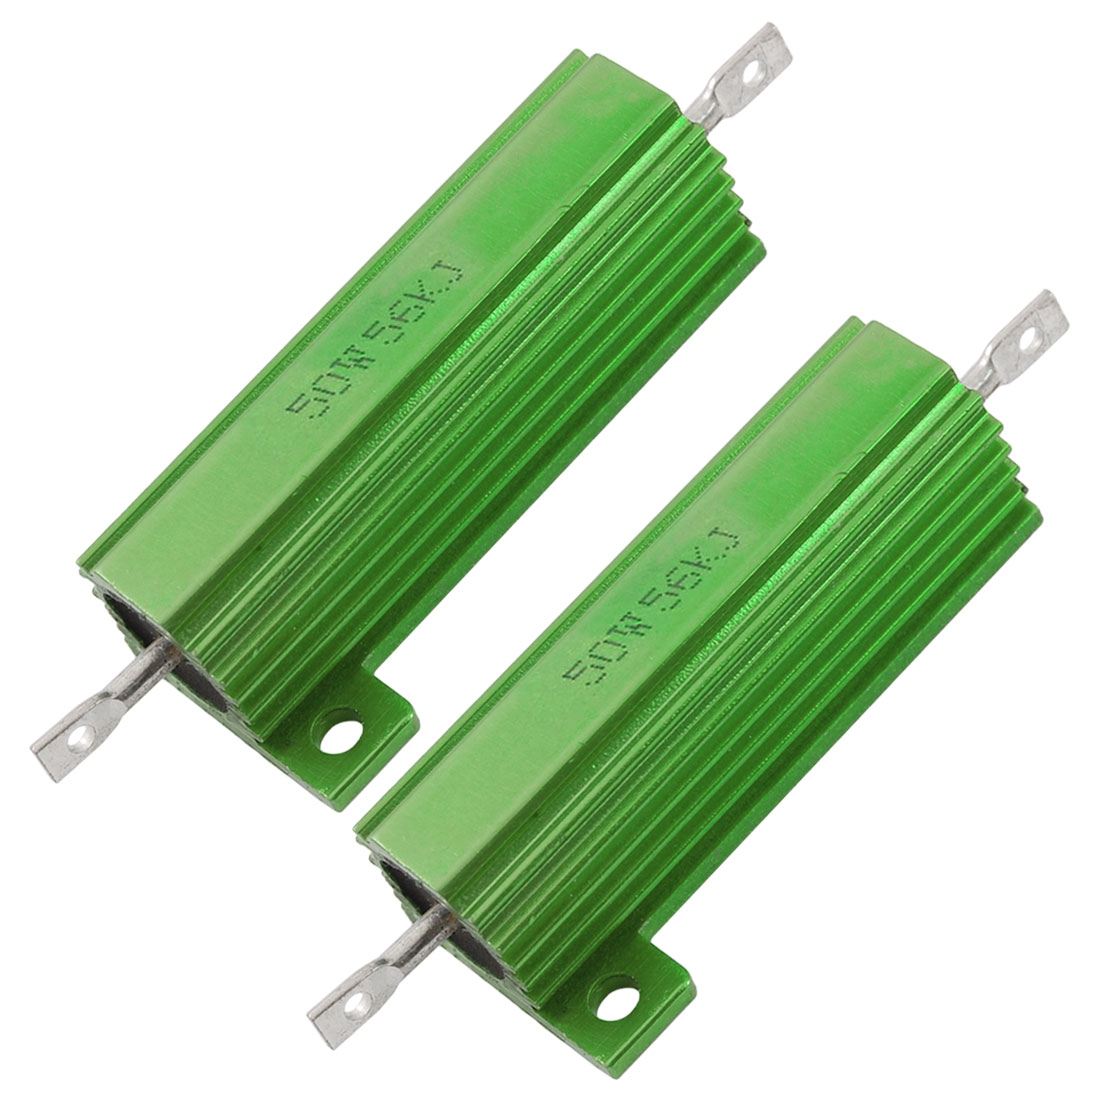 2 Pcs Green Aluminum Shell Wire Wound 50W 5% 56K Ohm Resistance Resistors